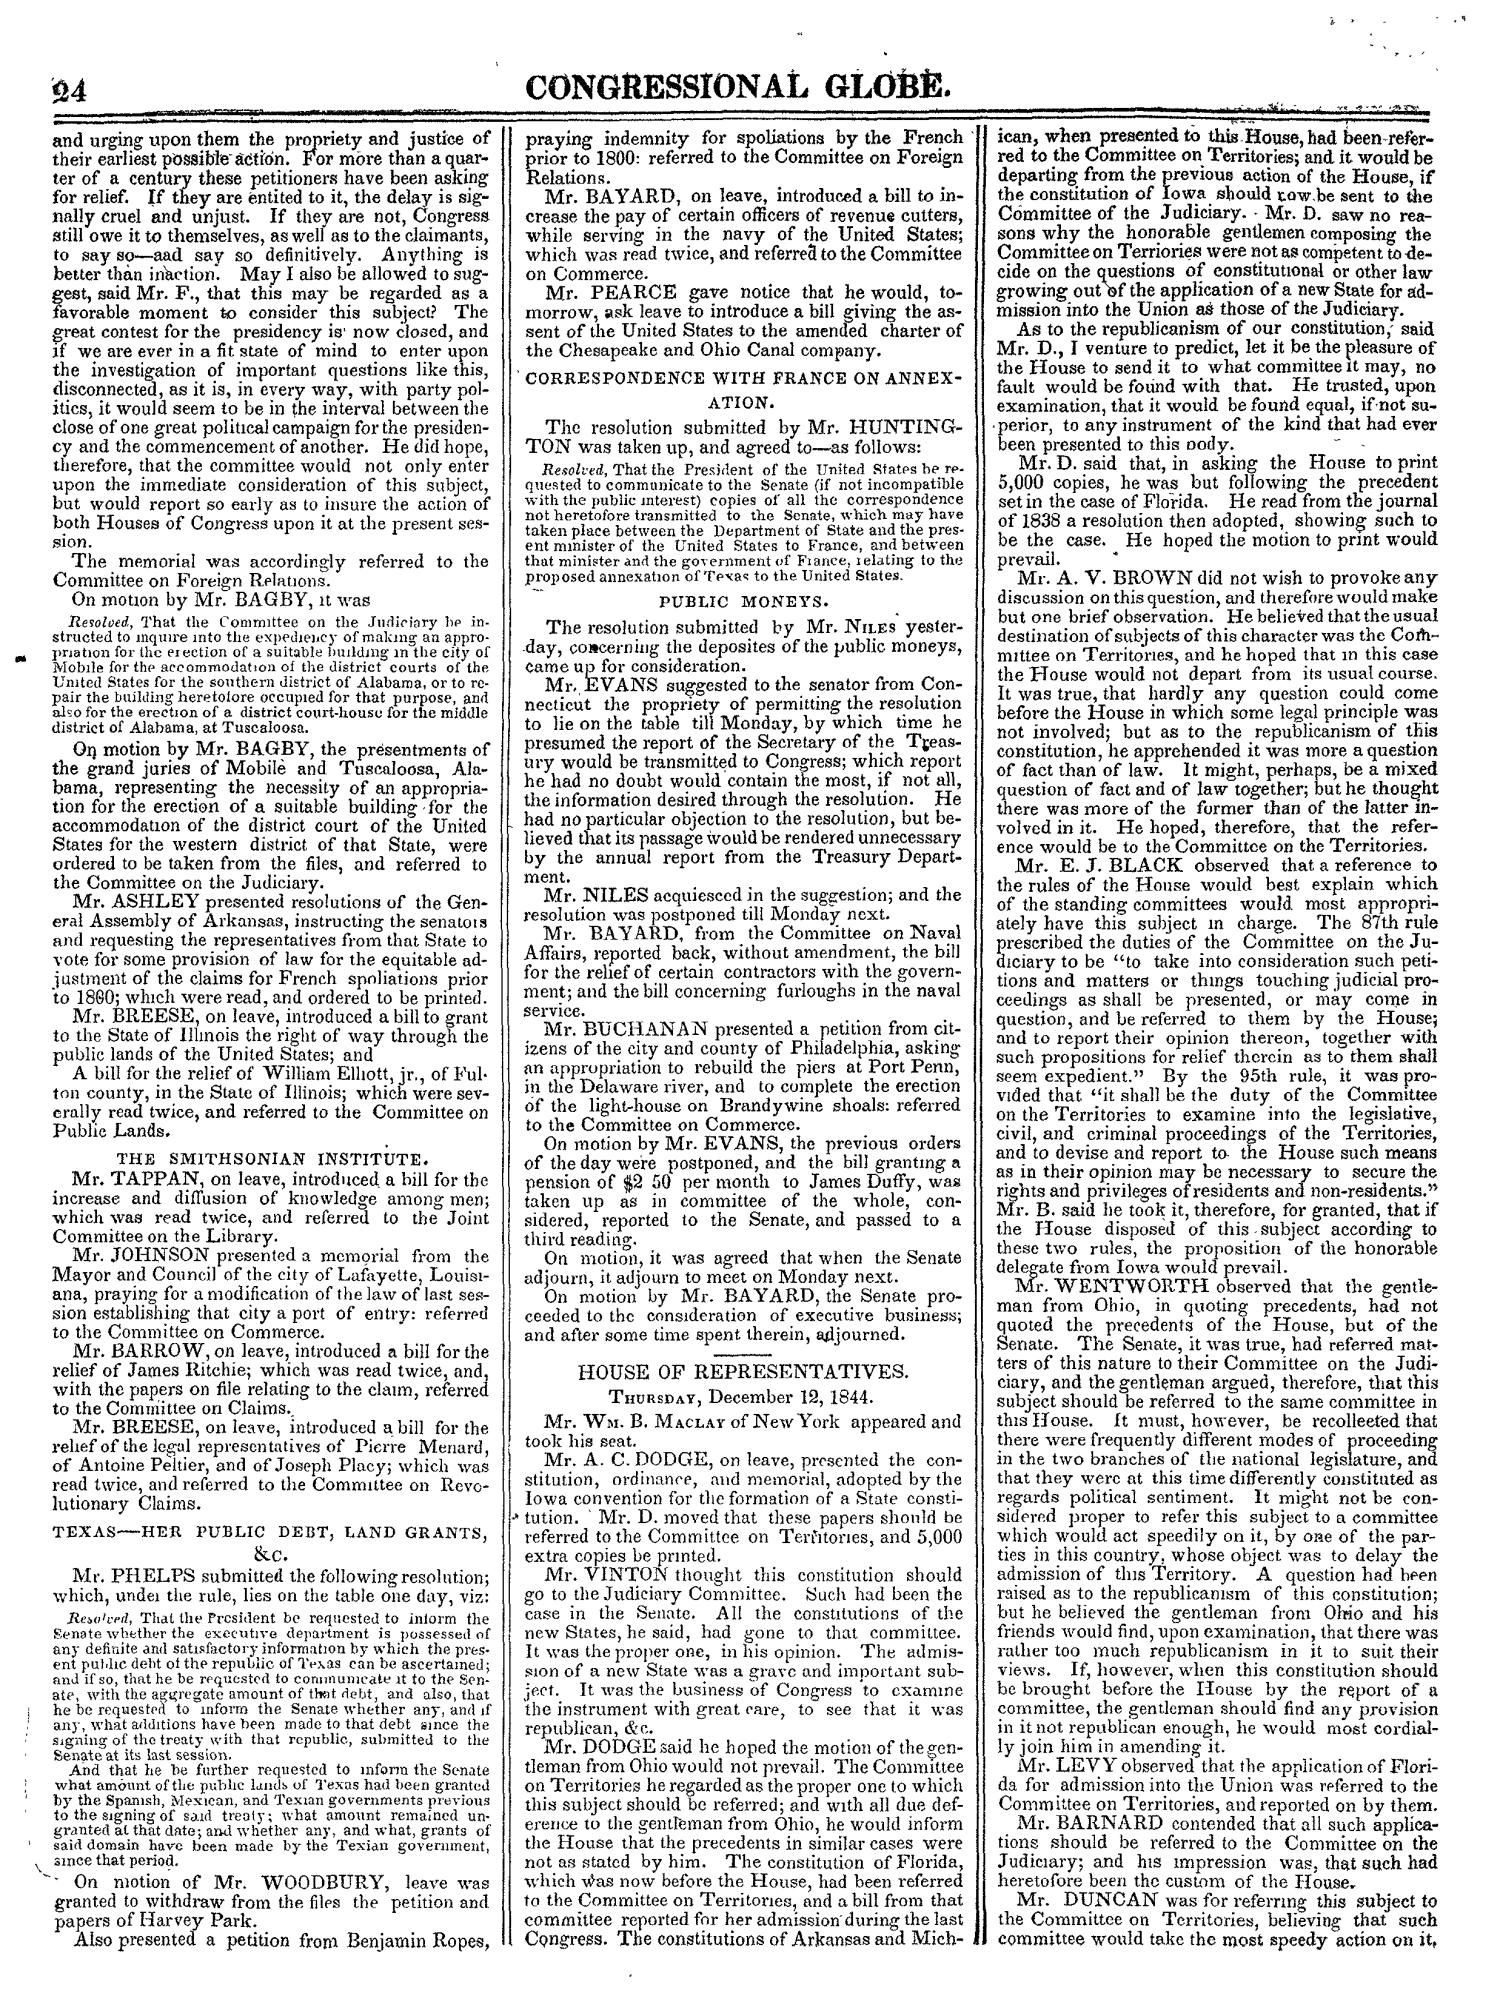 The Congressional Globe, Volume 14: Twenty-Eighth Congress, Second Session                                                                                                      24